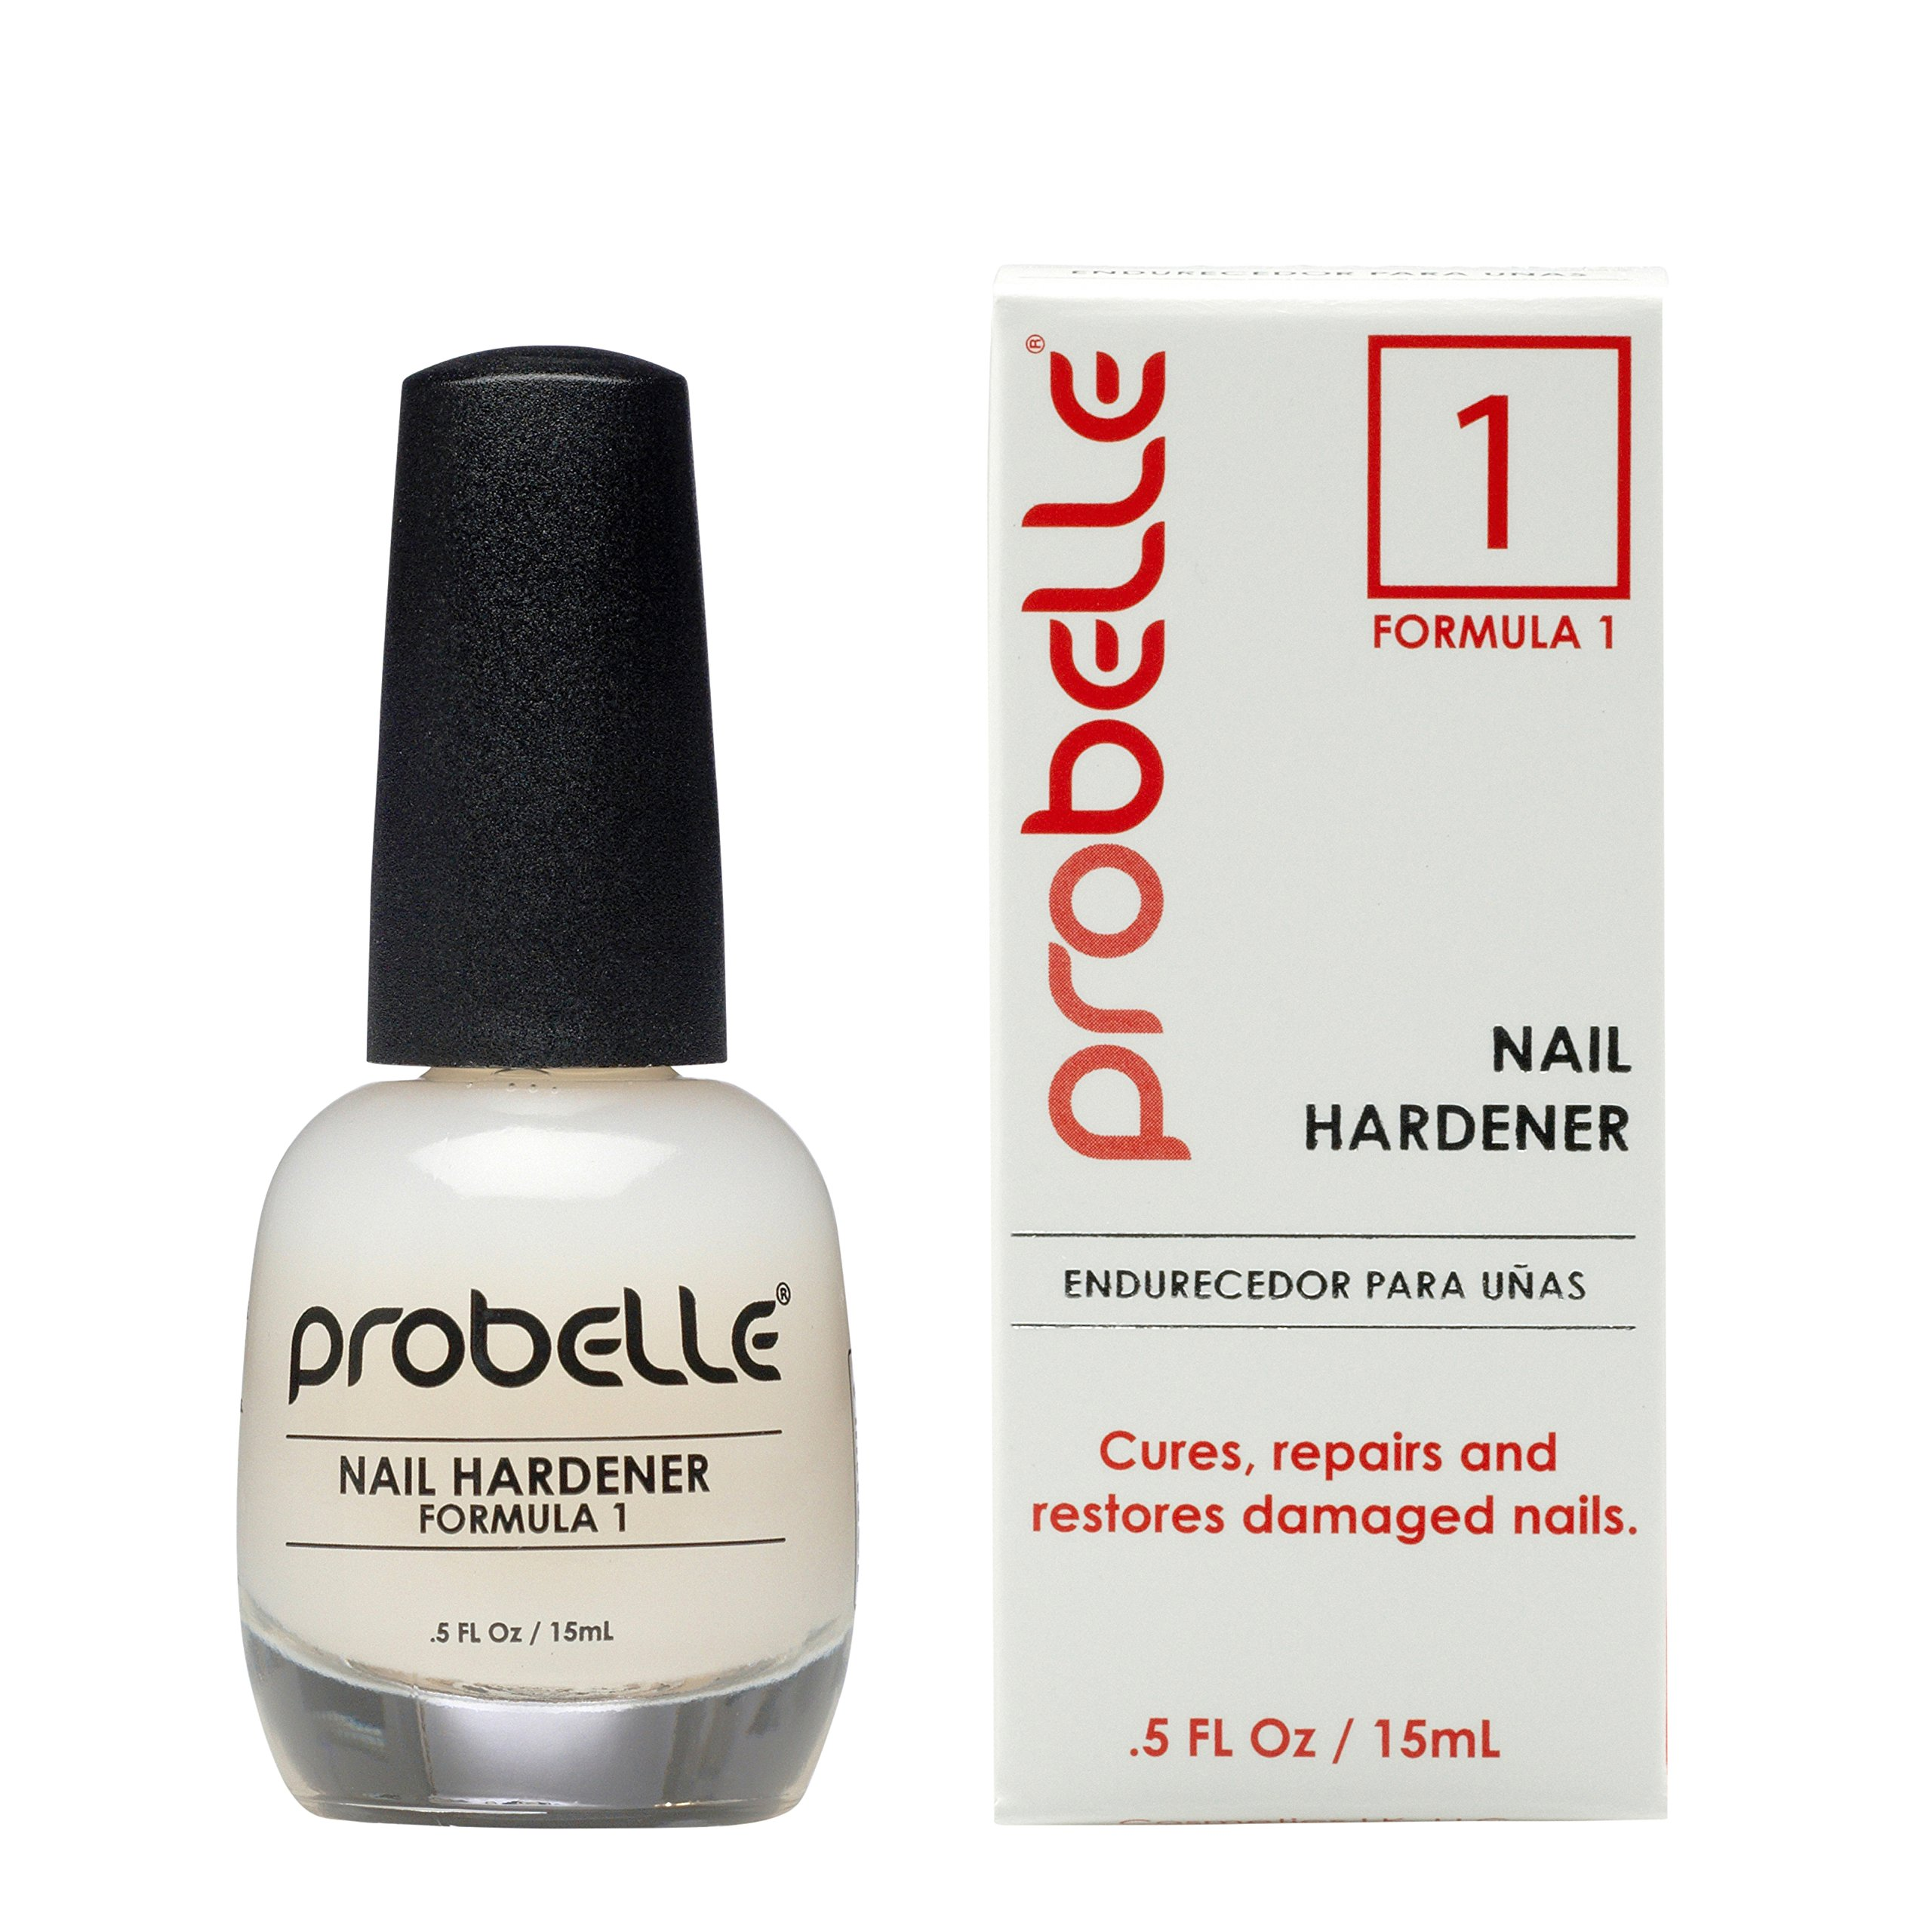 Probelle Nail Hardener Formula 1 - Grows and Restores thin, cracking, and peeling nails .5 fl oz/ 15 mL